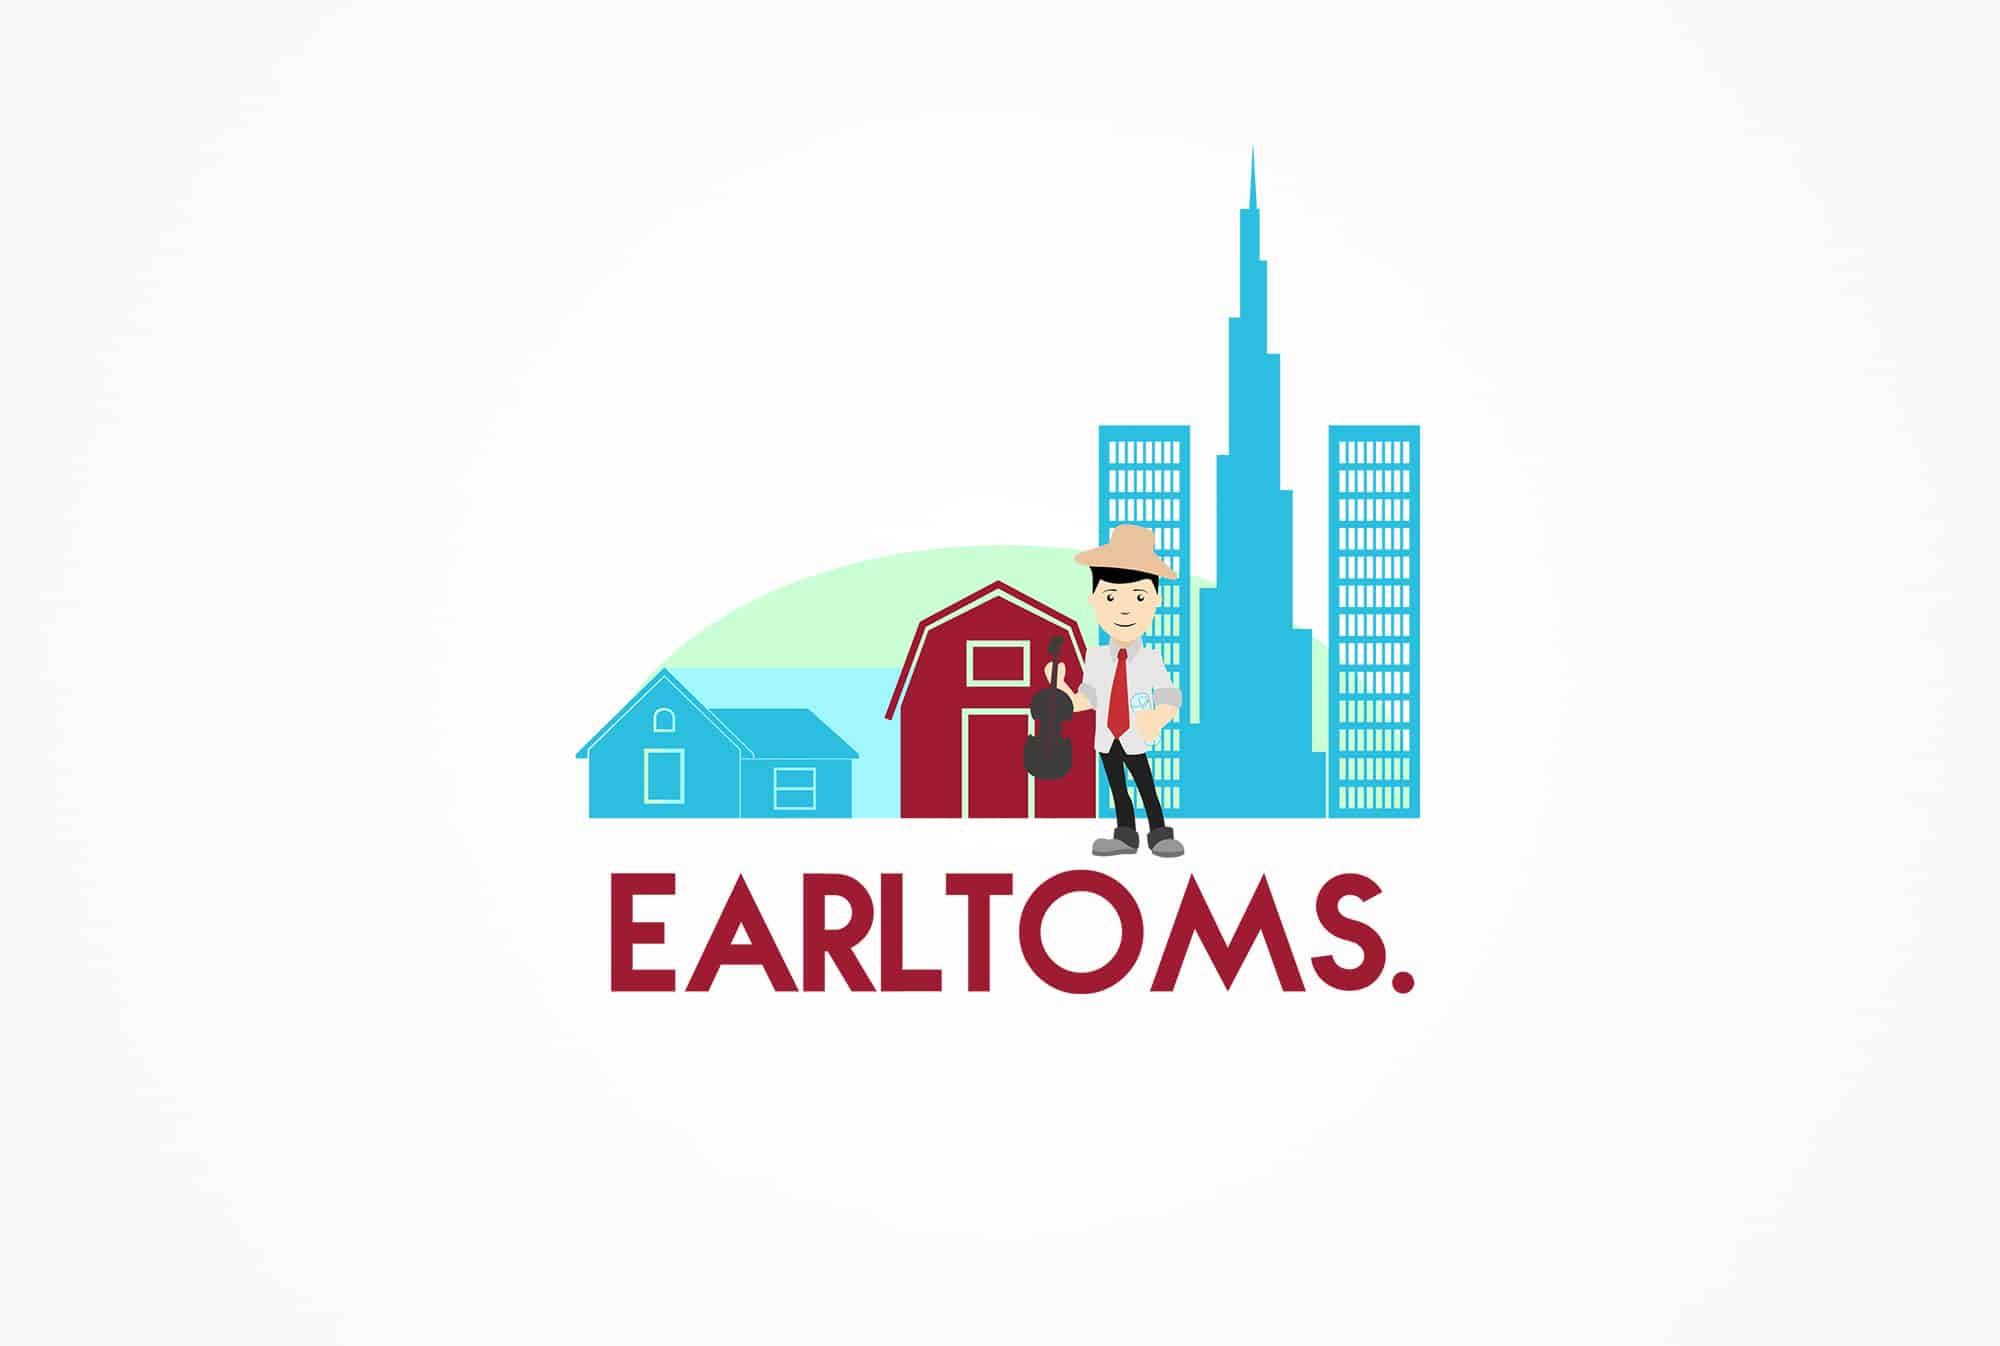 EarlToms.com